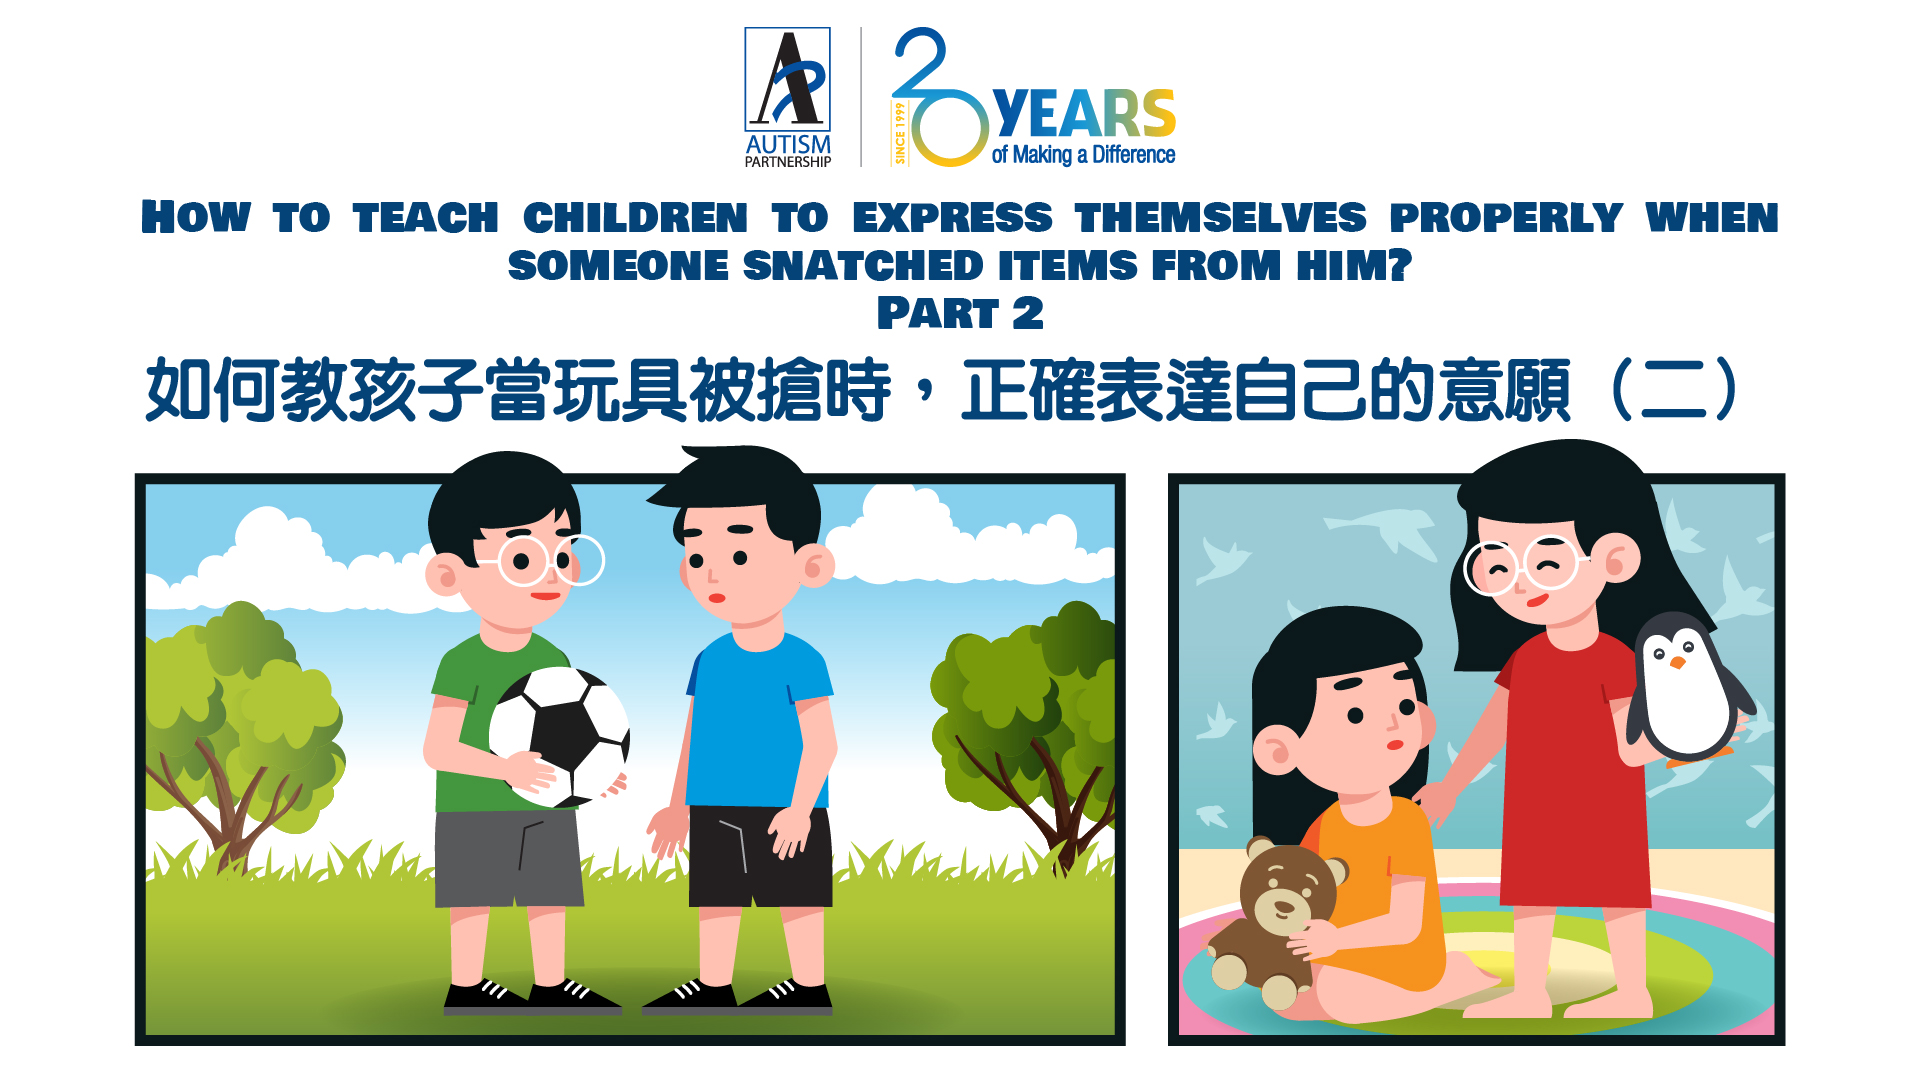 how-to-teach-children-to-express-themselves_p2_banner